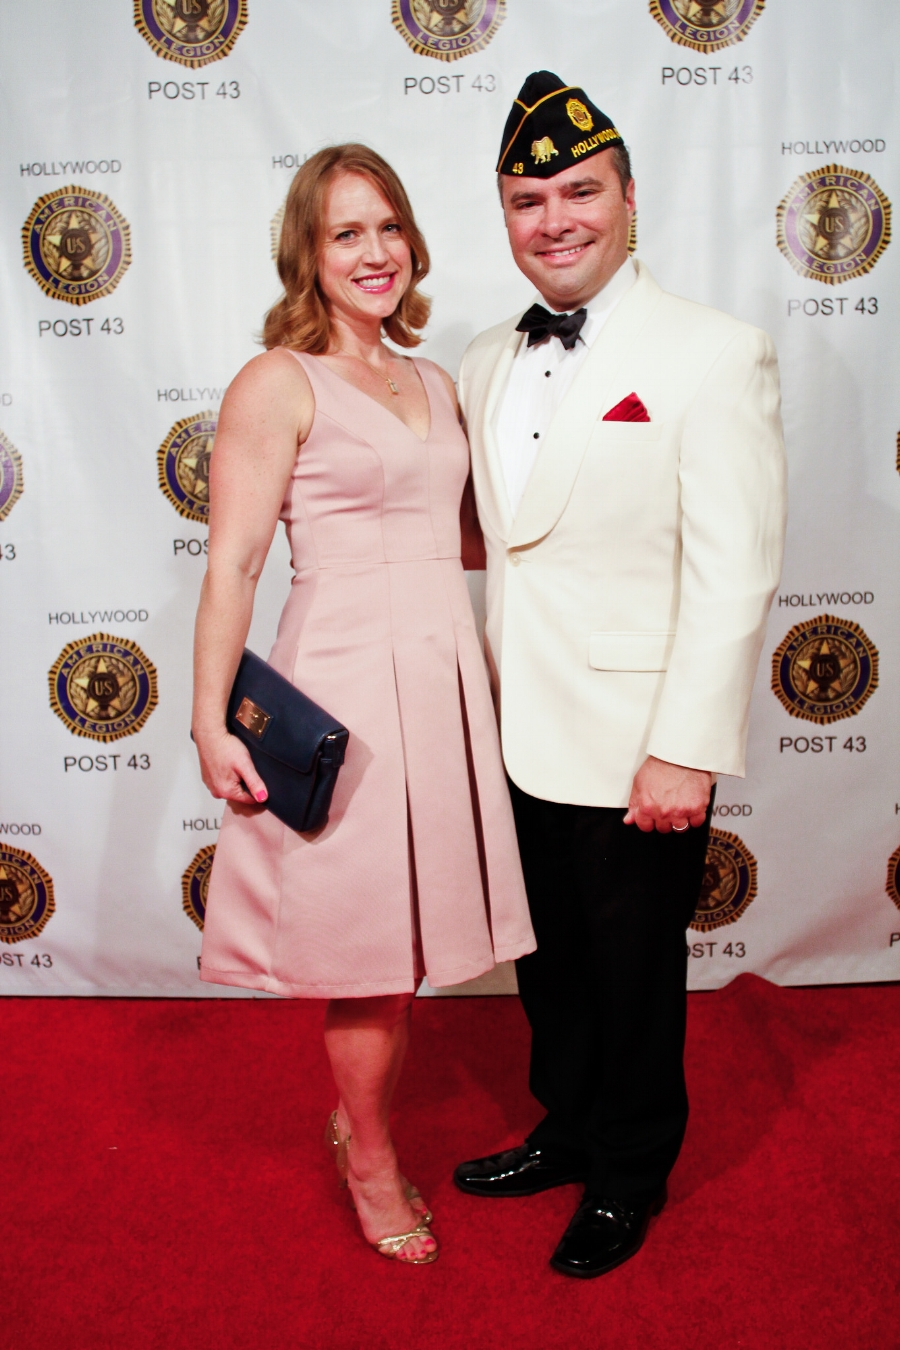 Unit 43 Auxiliary member Jocelyn Rivero and the new commander for 2017-2018 Fernando Rivero on the red carpet at the 2017 Commander's Ball, June 17, 2017.  (photo by David Tenenbaum)  RED CARPET PHOTOS NOW AVAILABLE HERE!